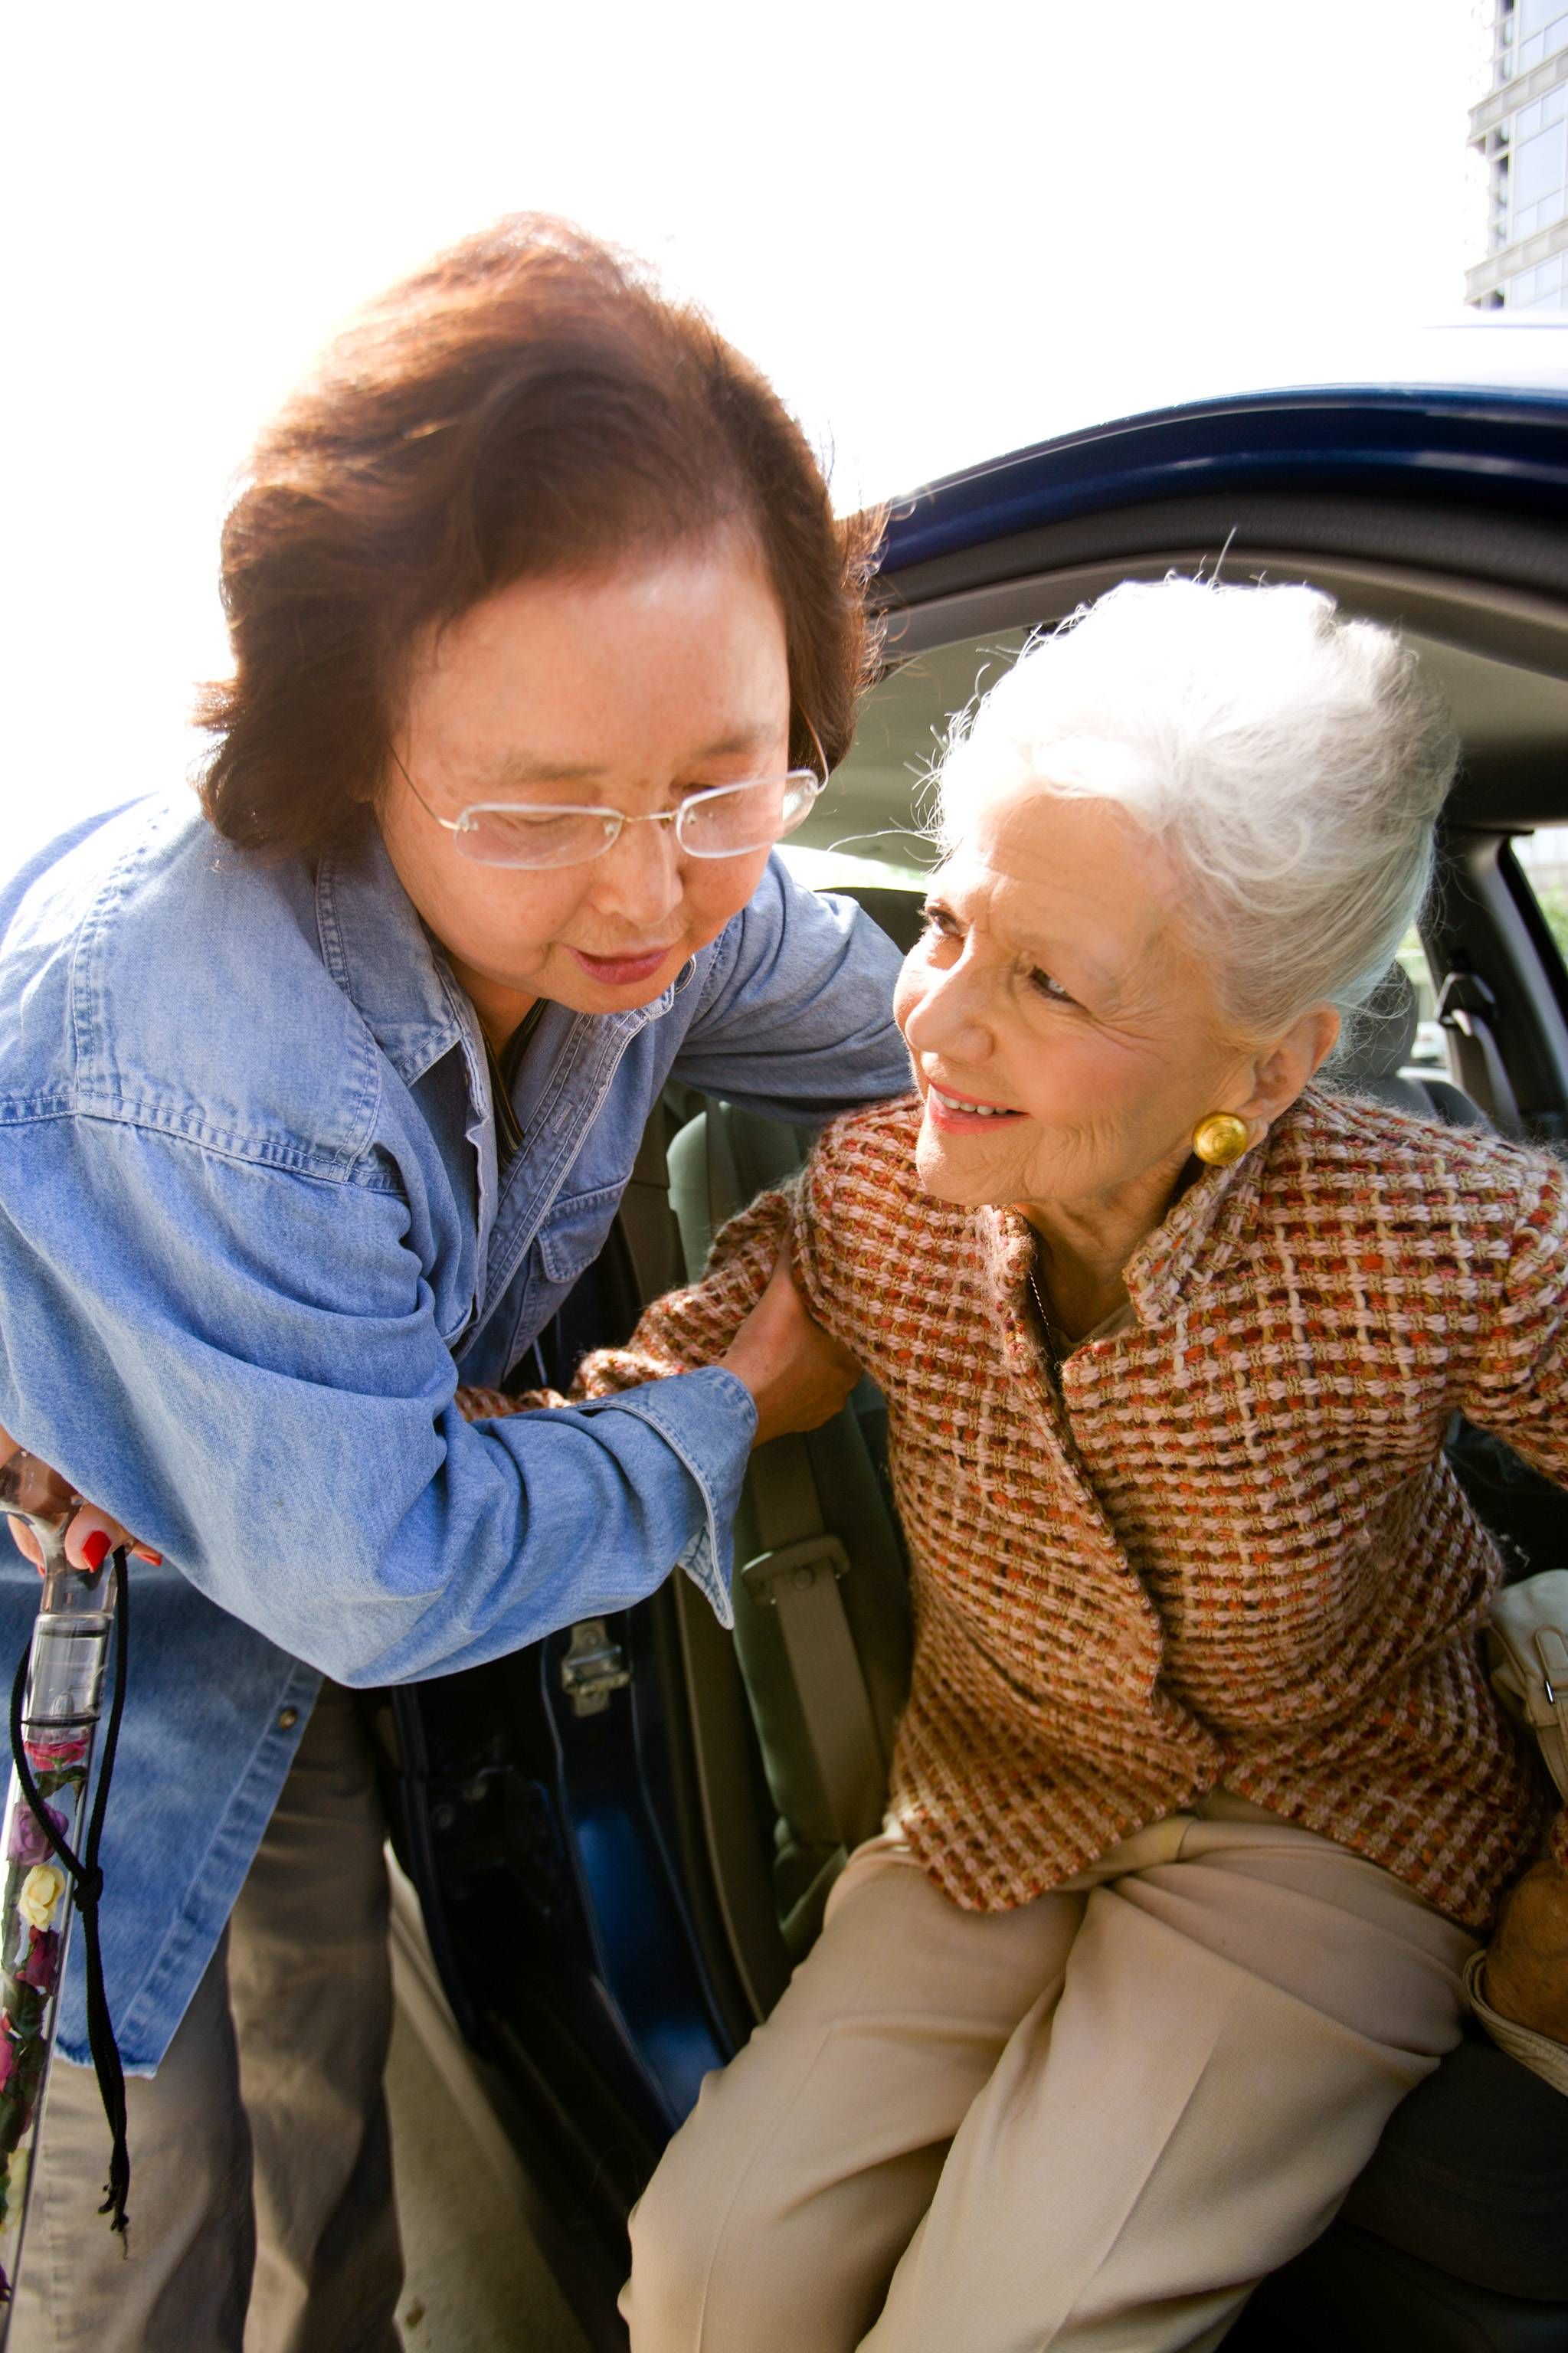 A volunteer helps a cancer patient out of the car after arriving at her appointment location.